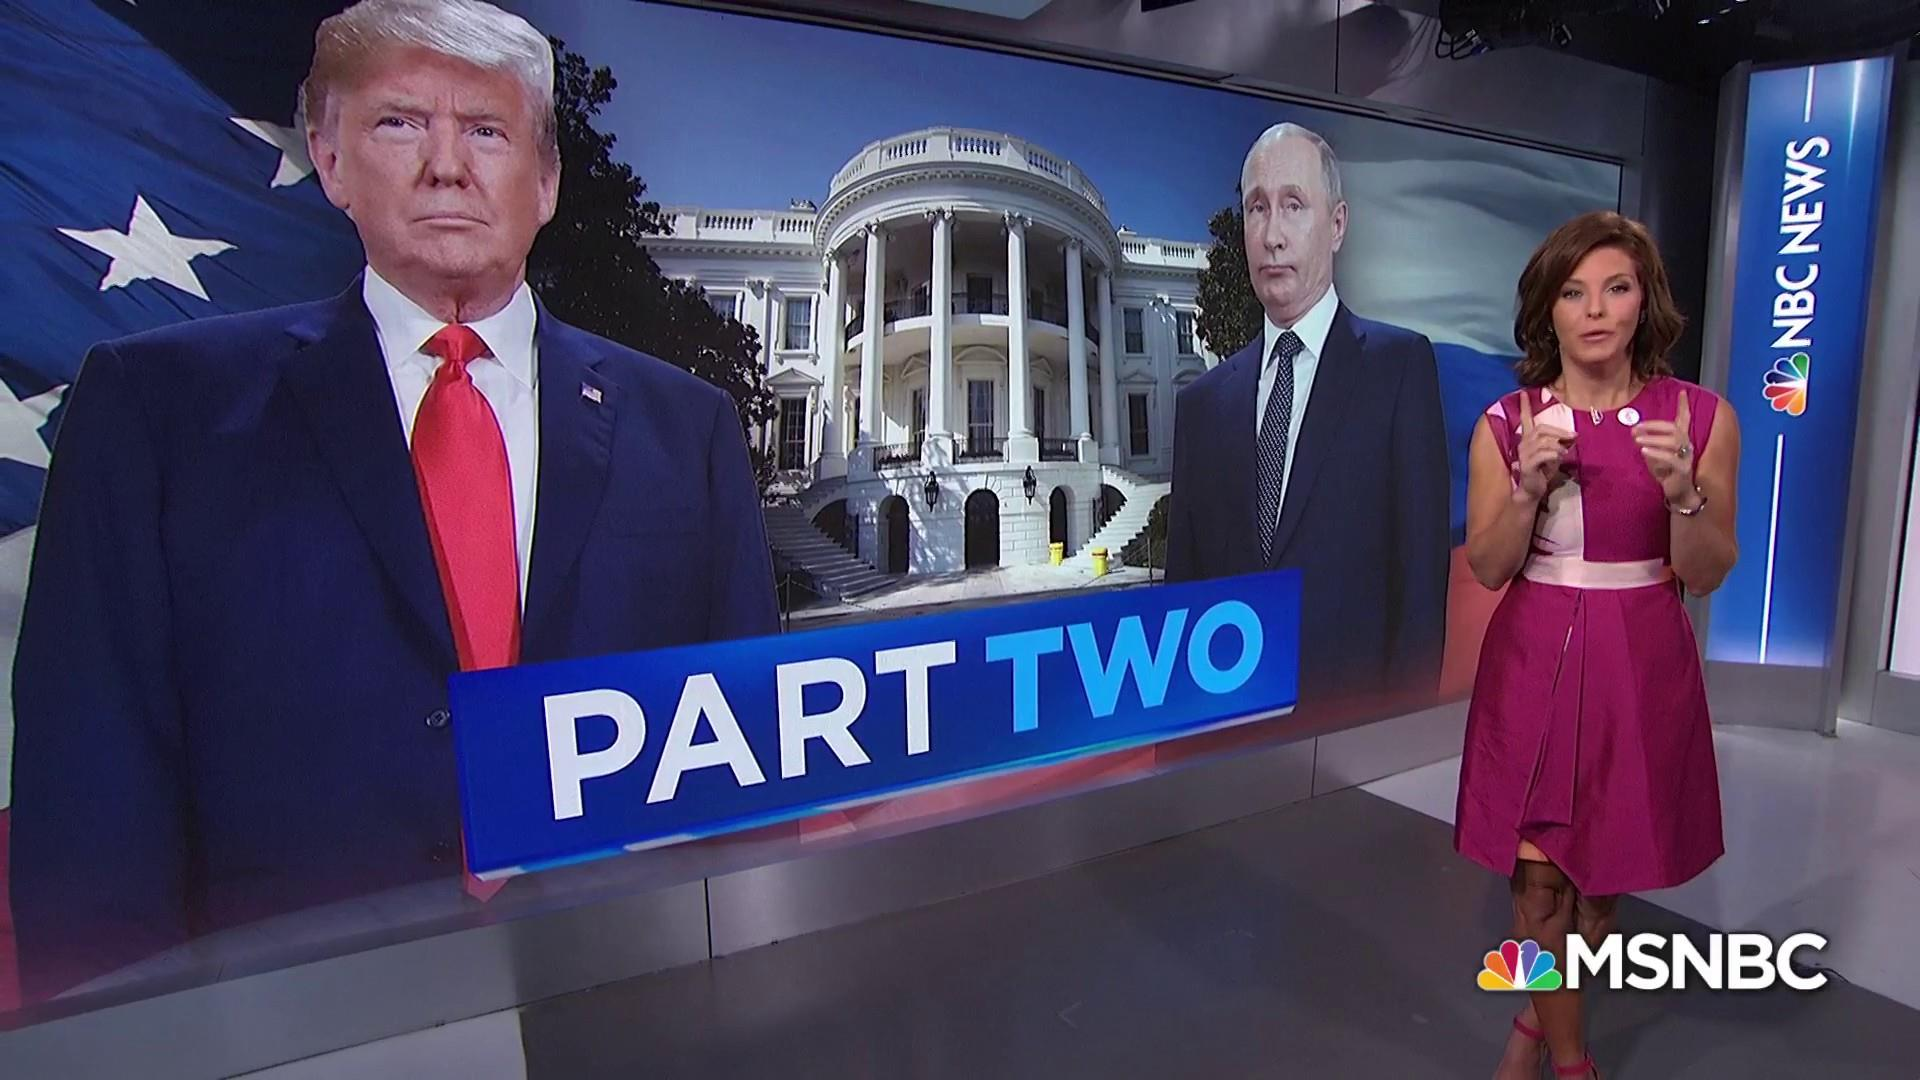 Presidents Trump and Putin: Part Two